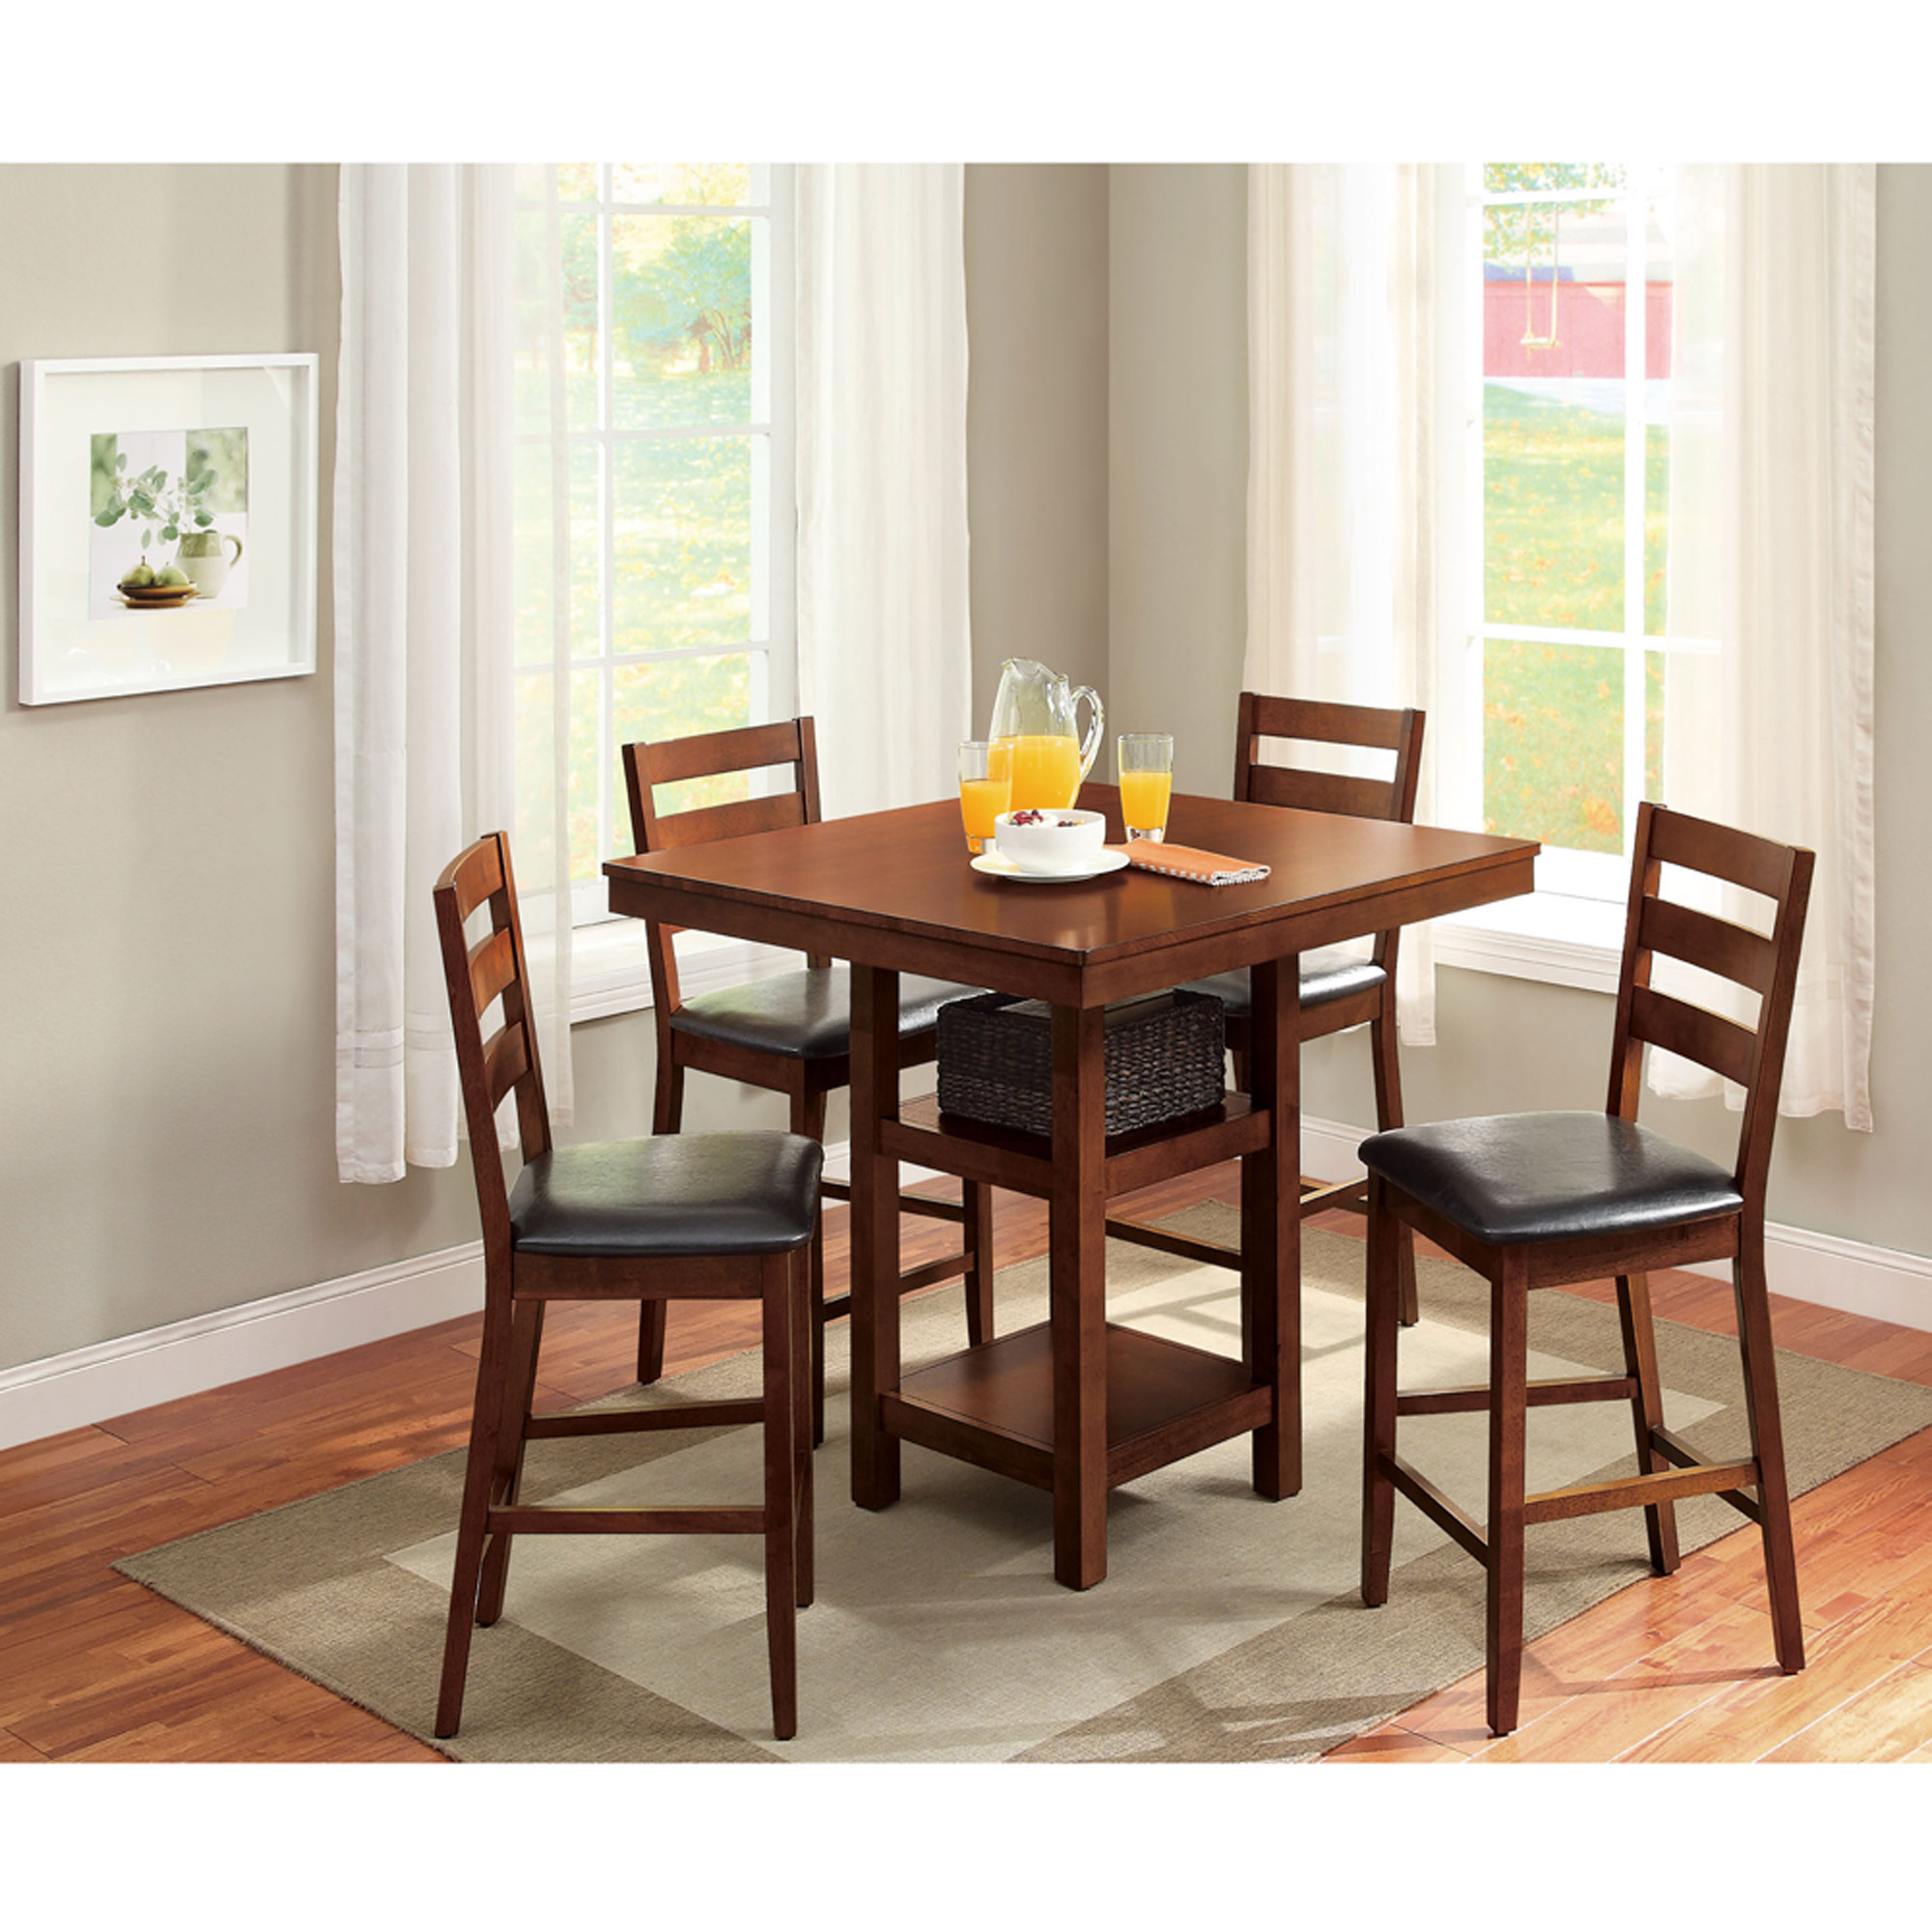 better homes and gardens dalton park 5piece counter height dining set mocha